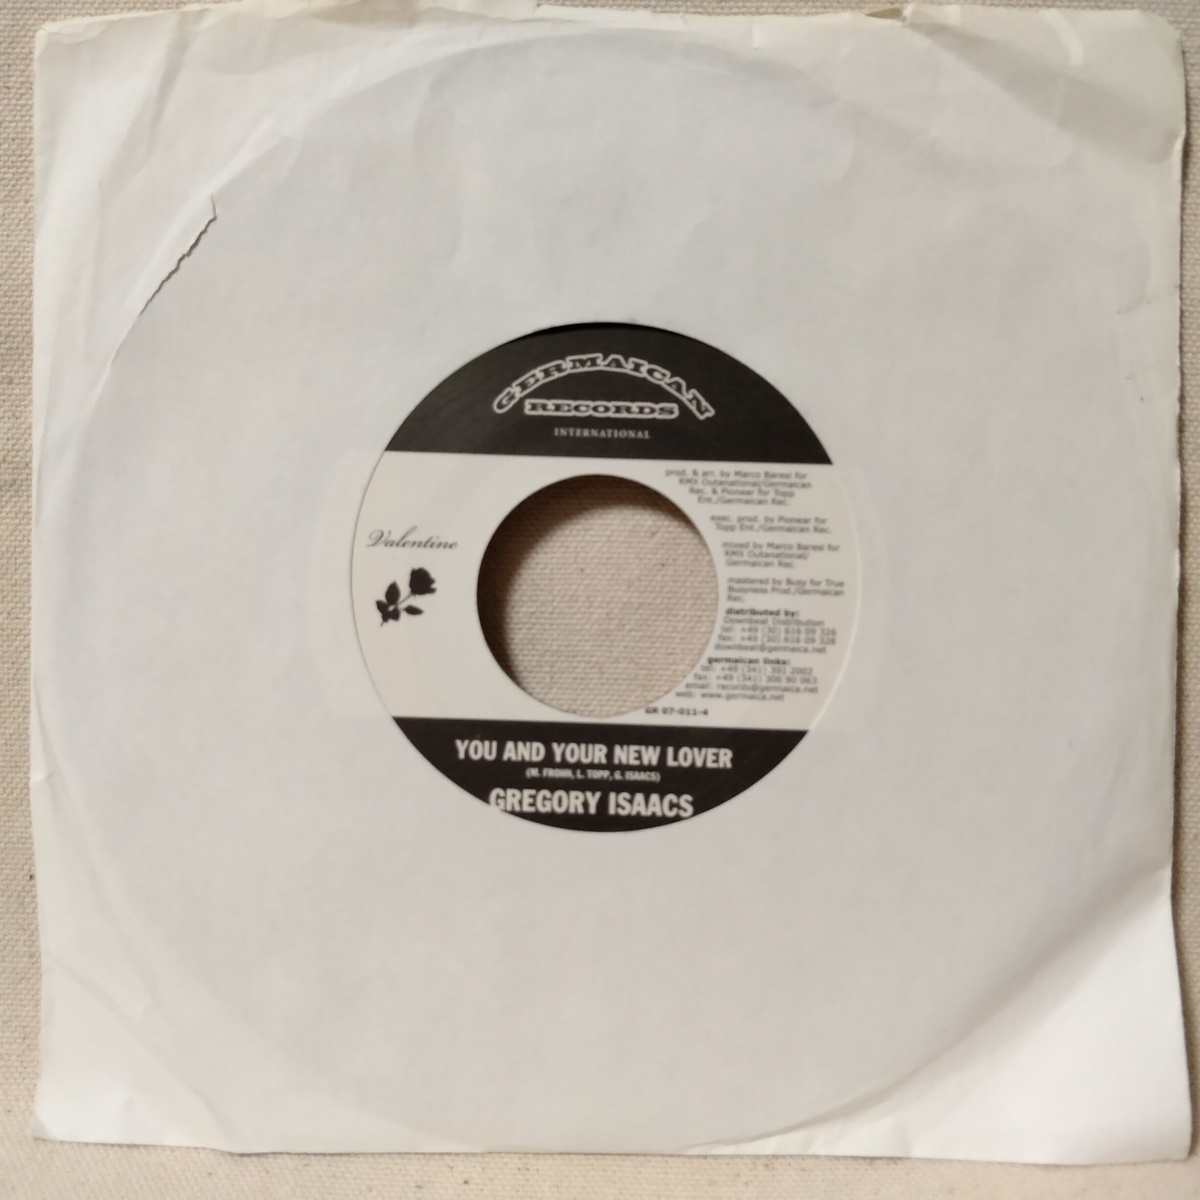 GREGORY ISAACS YOU & YOUR NEW LOVER / MARCO BARESI VALENTINE ★ レゲエ / ダンスホール★7インチレコード[6747EP_画像1